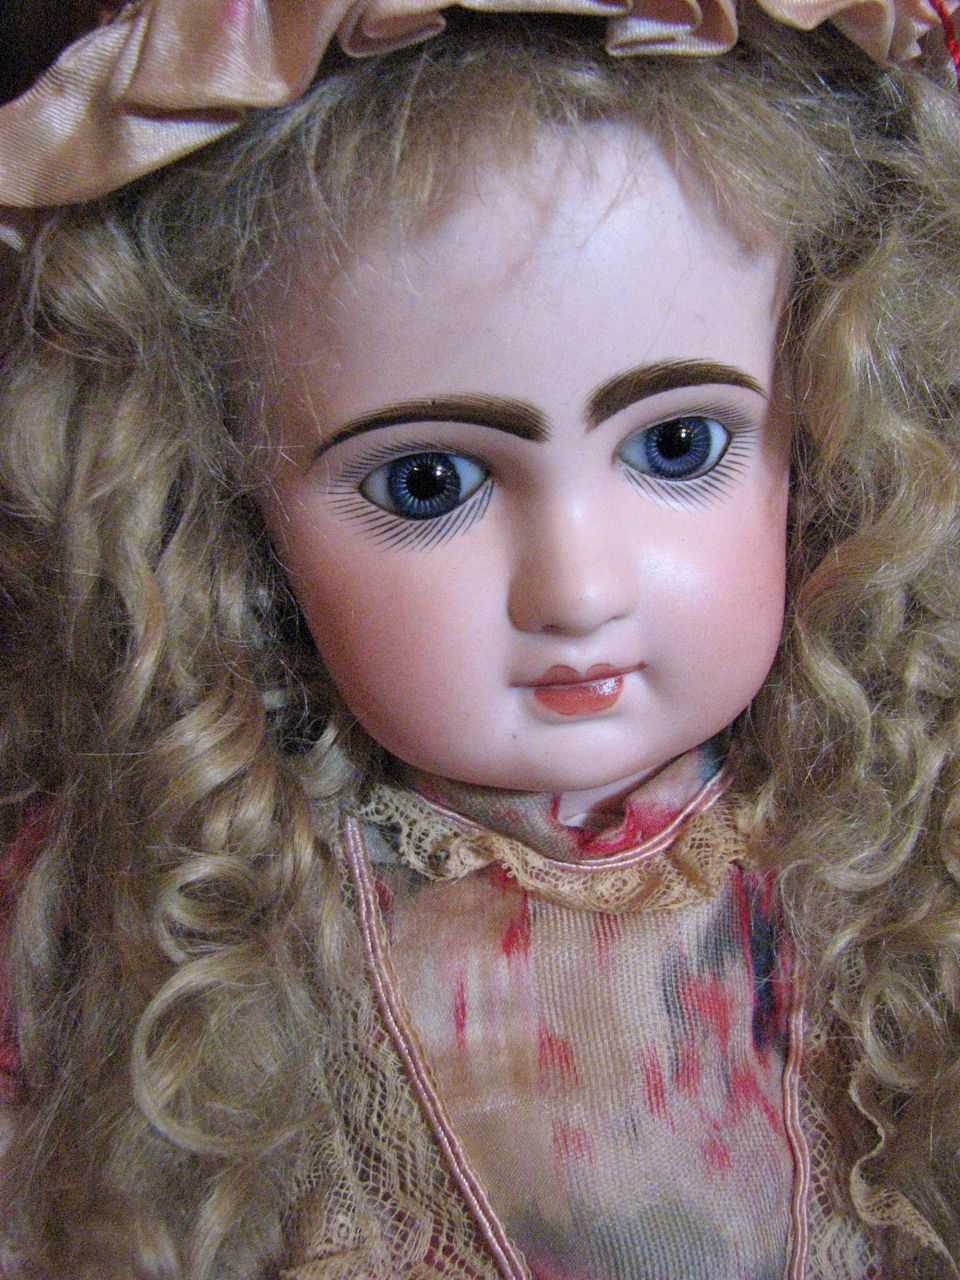 "Darling 15"" ED Jumeau made by Douillet management, 1892-1899.  From the collection of Victorian Retreat. #DollShopsUnited"